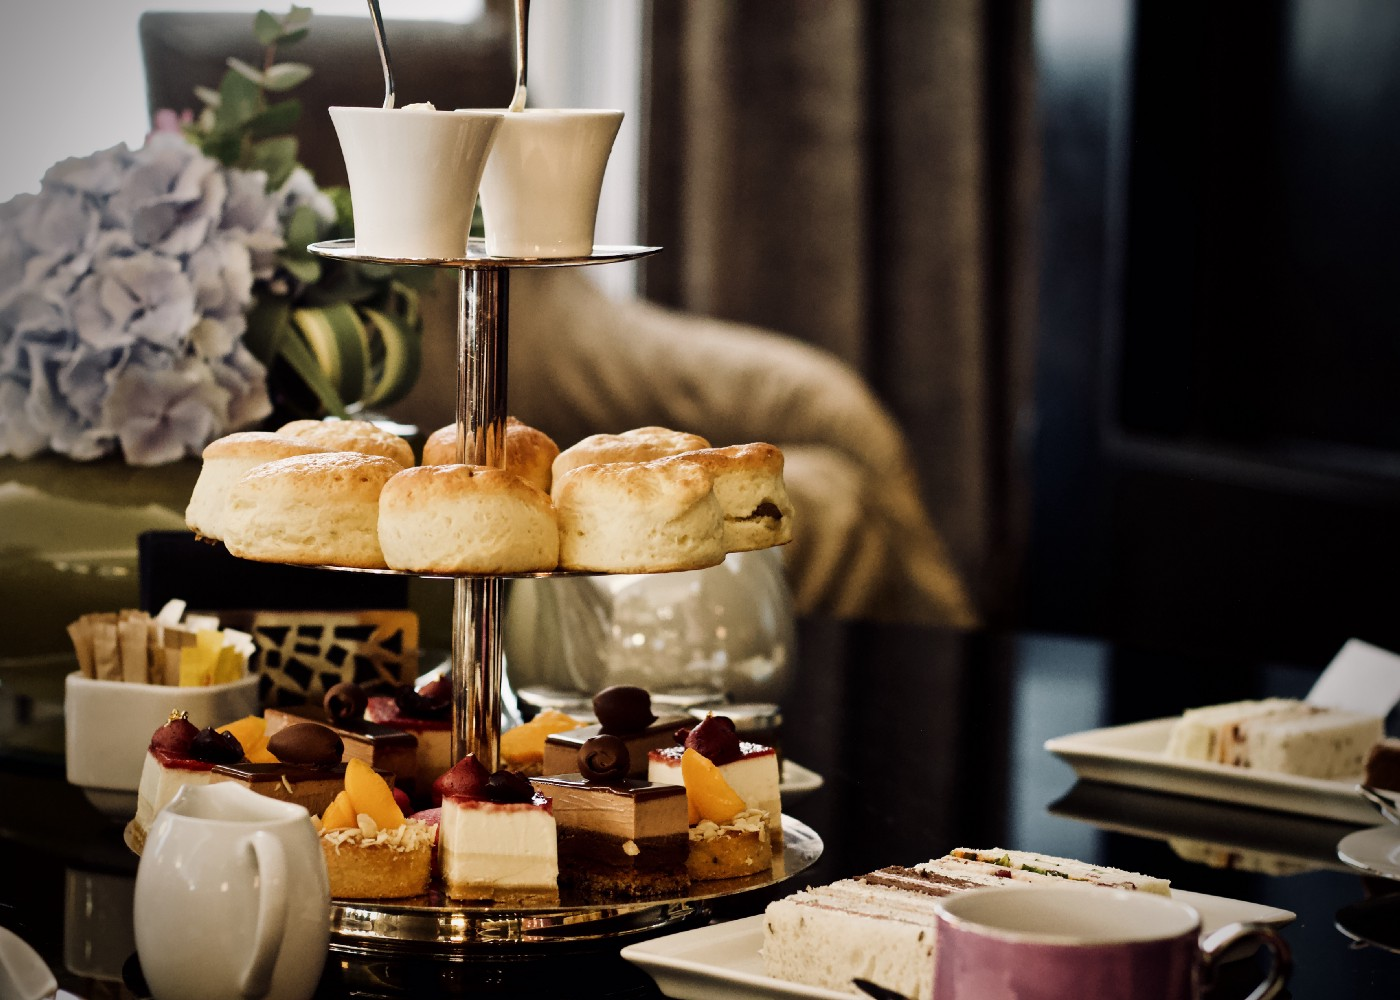 Tea time in England with a tiered platter full of scones.